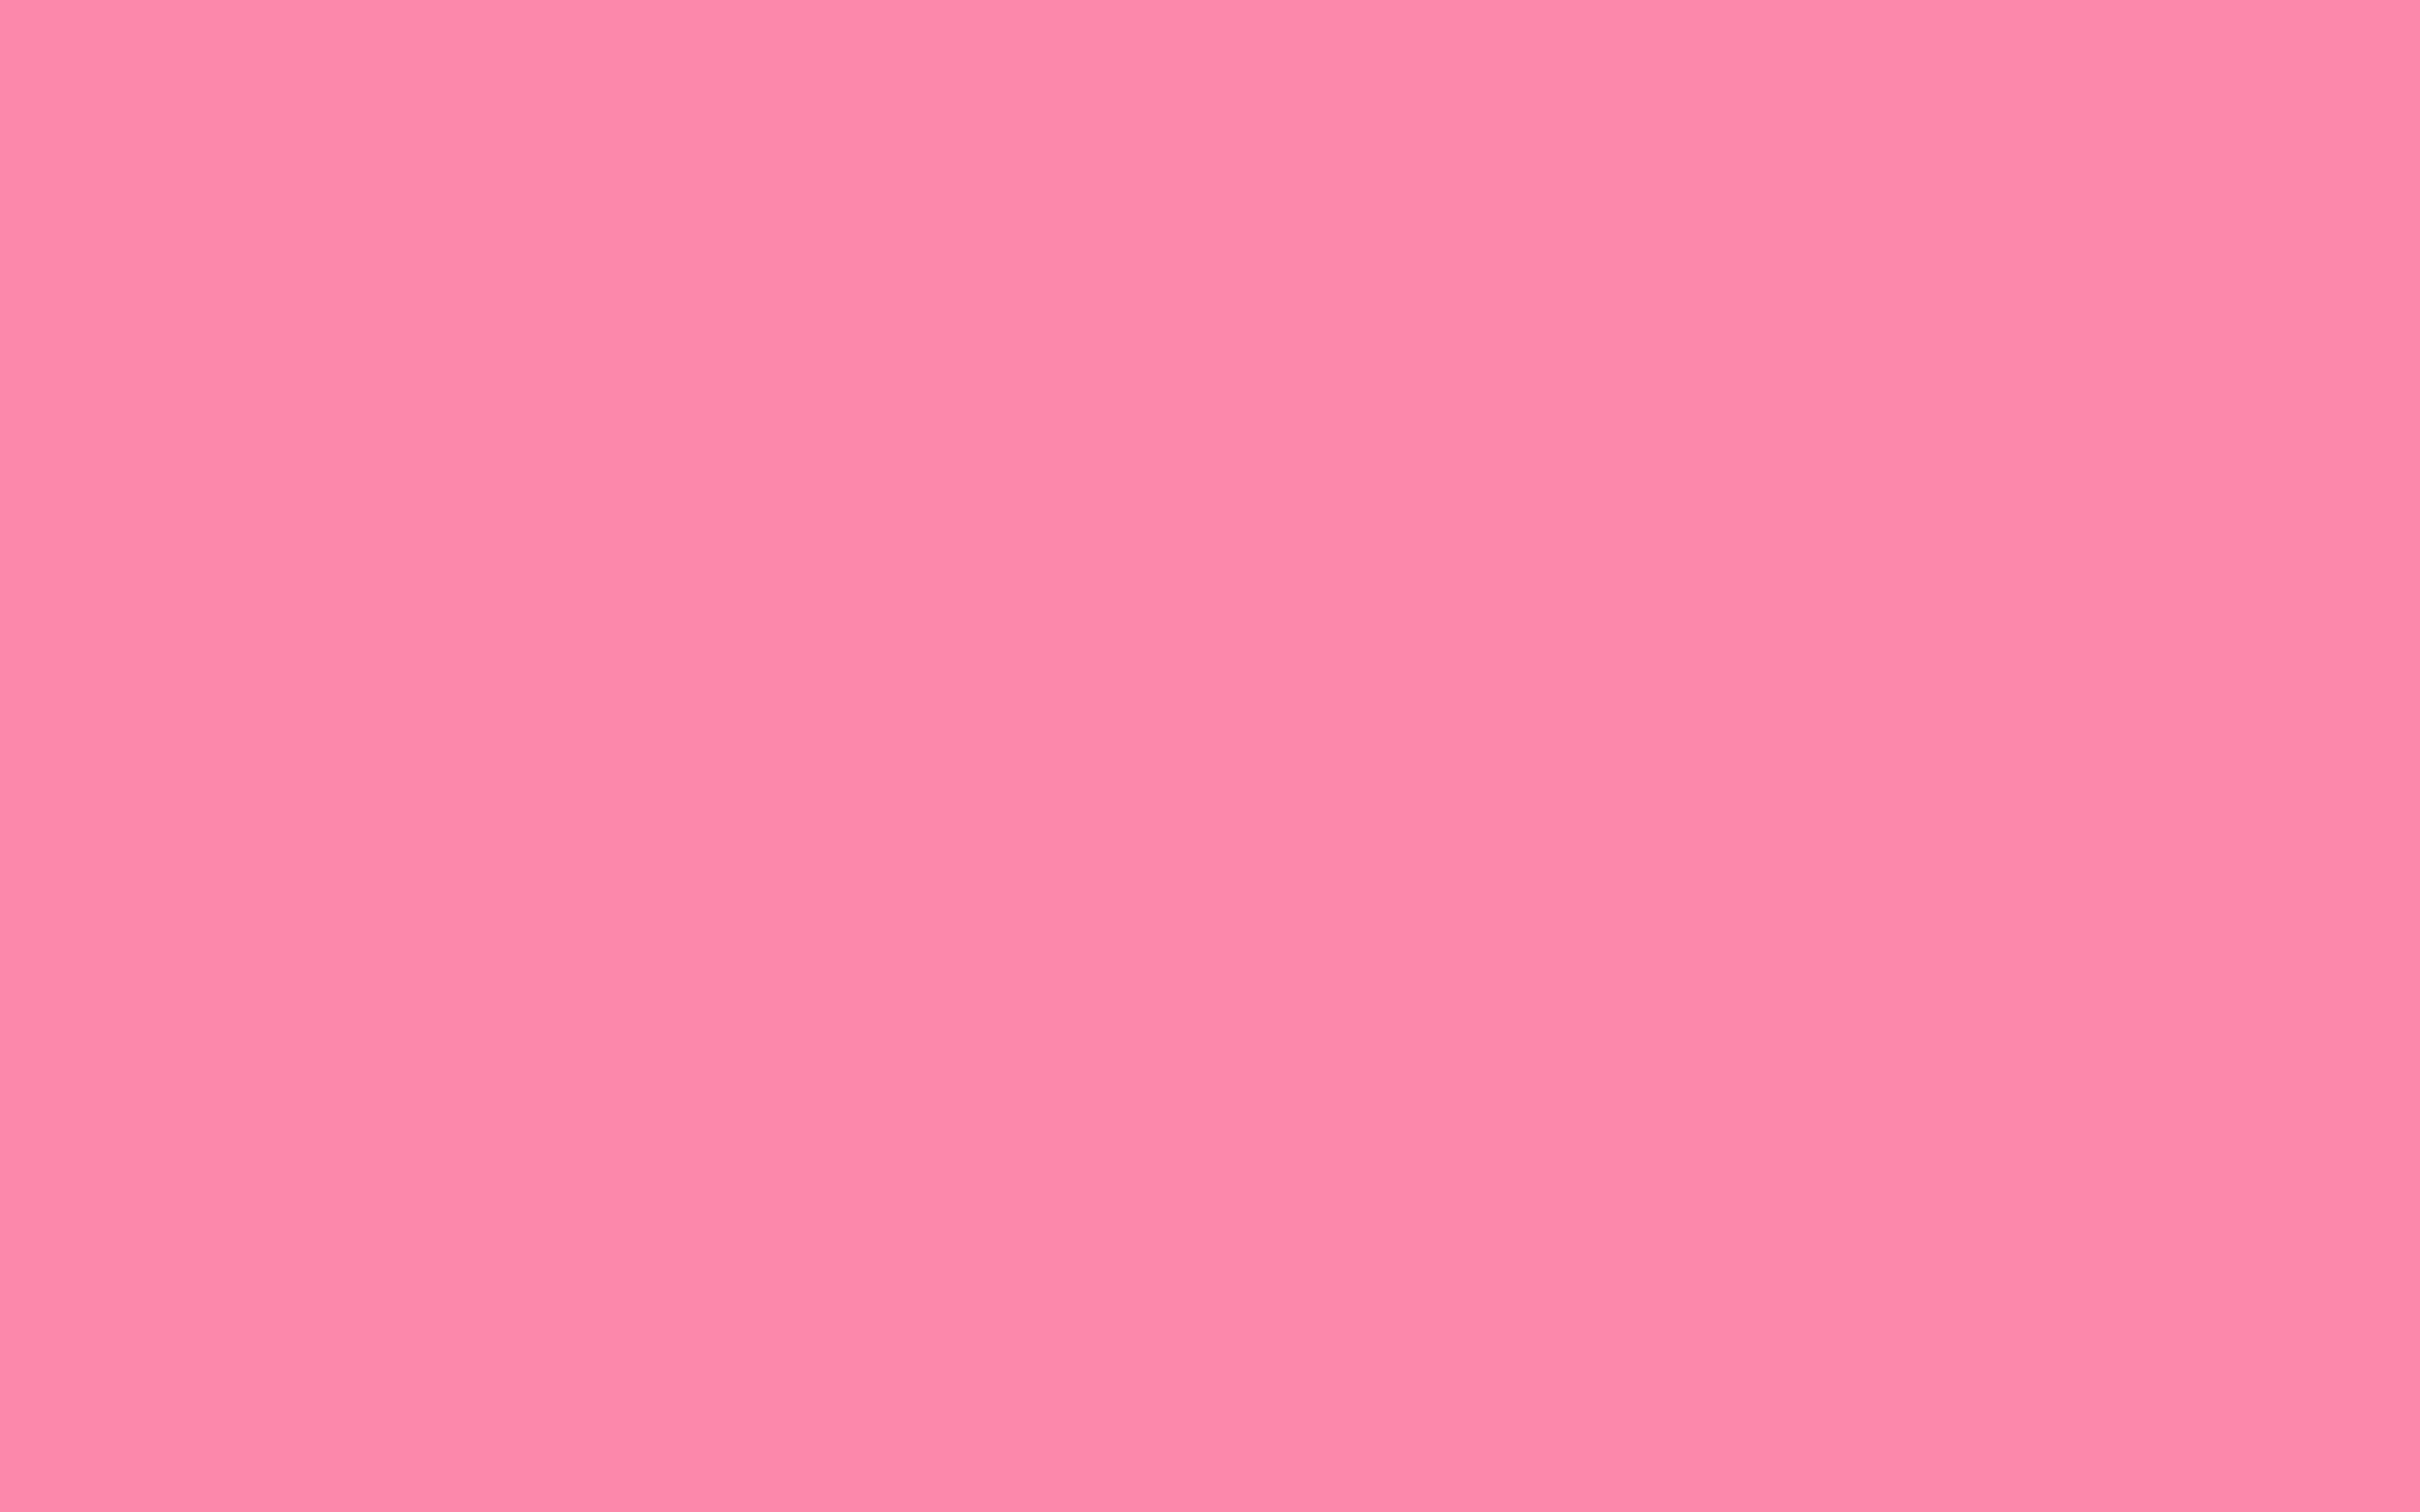 2880x1800 Tickle Me Pink Solid Color Background